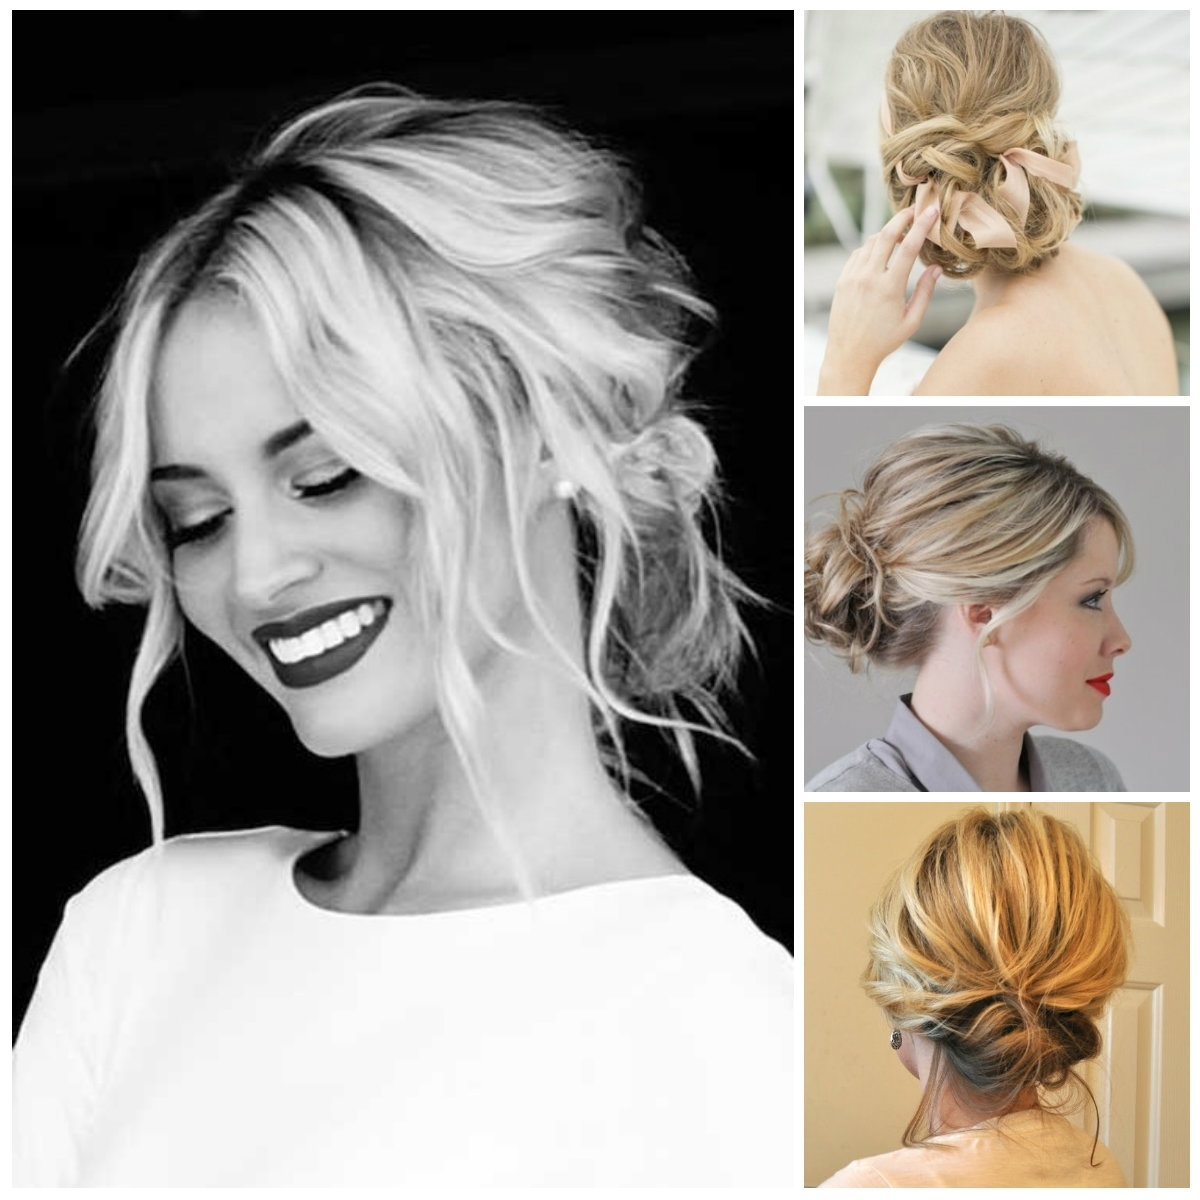 Current Wedding Hairstyles For Medium Length Hair With Fringe Pertaining To Hair Updos For Medium Hair – Hairstyle For Women & Man (View 6 of 15)